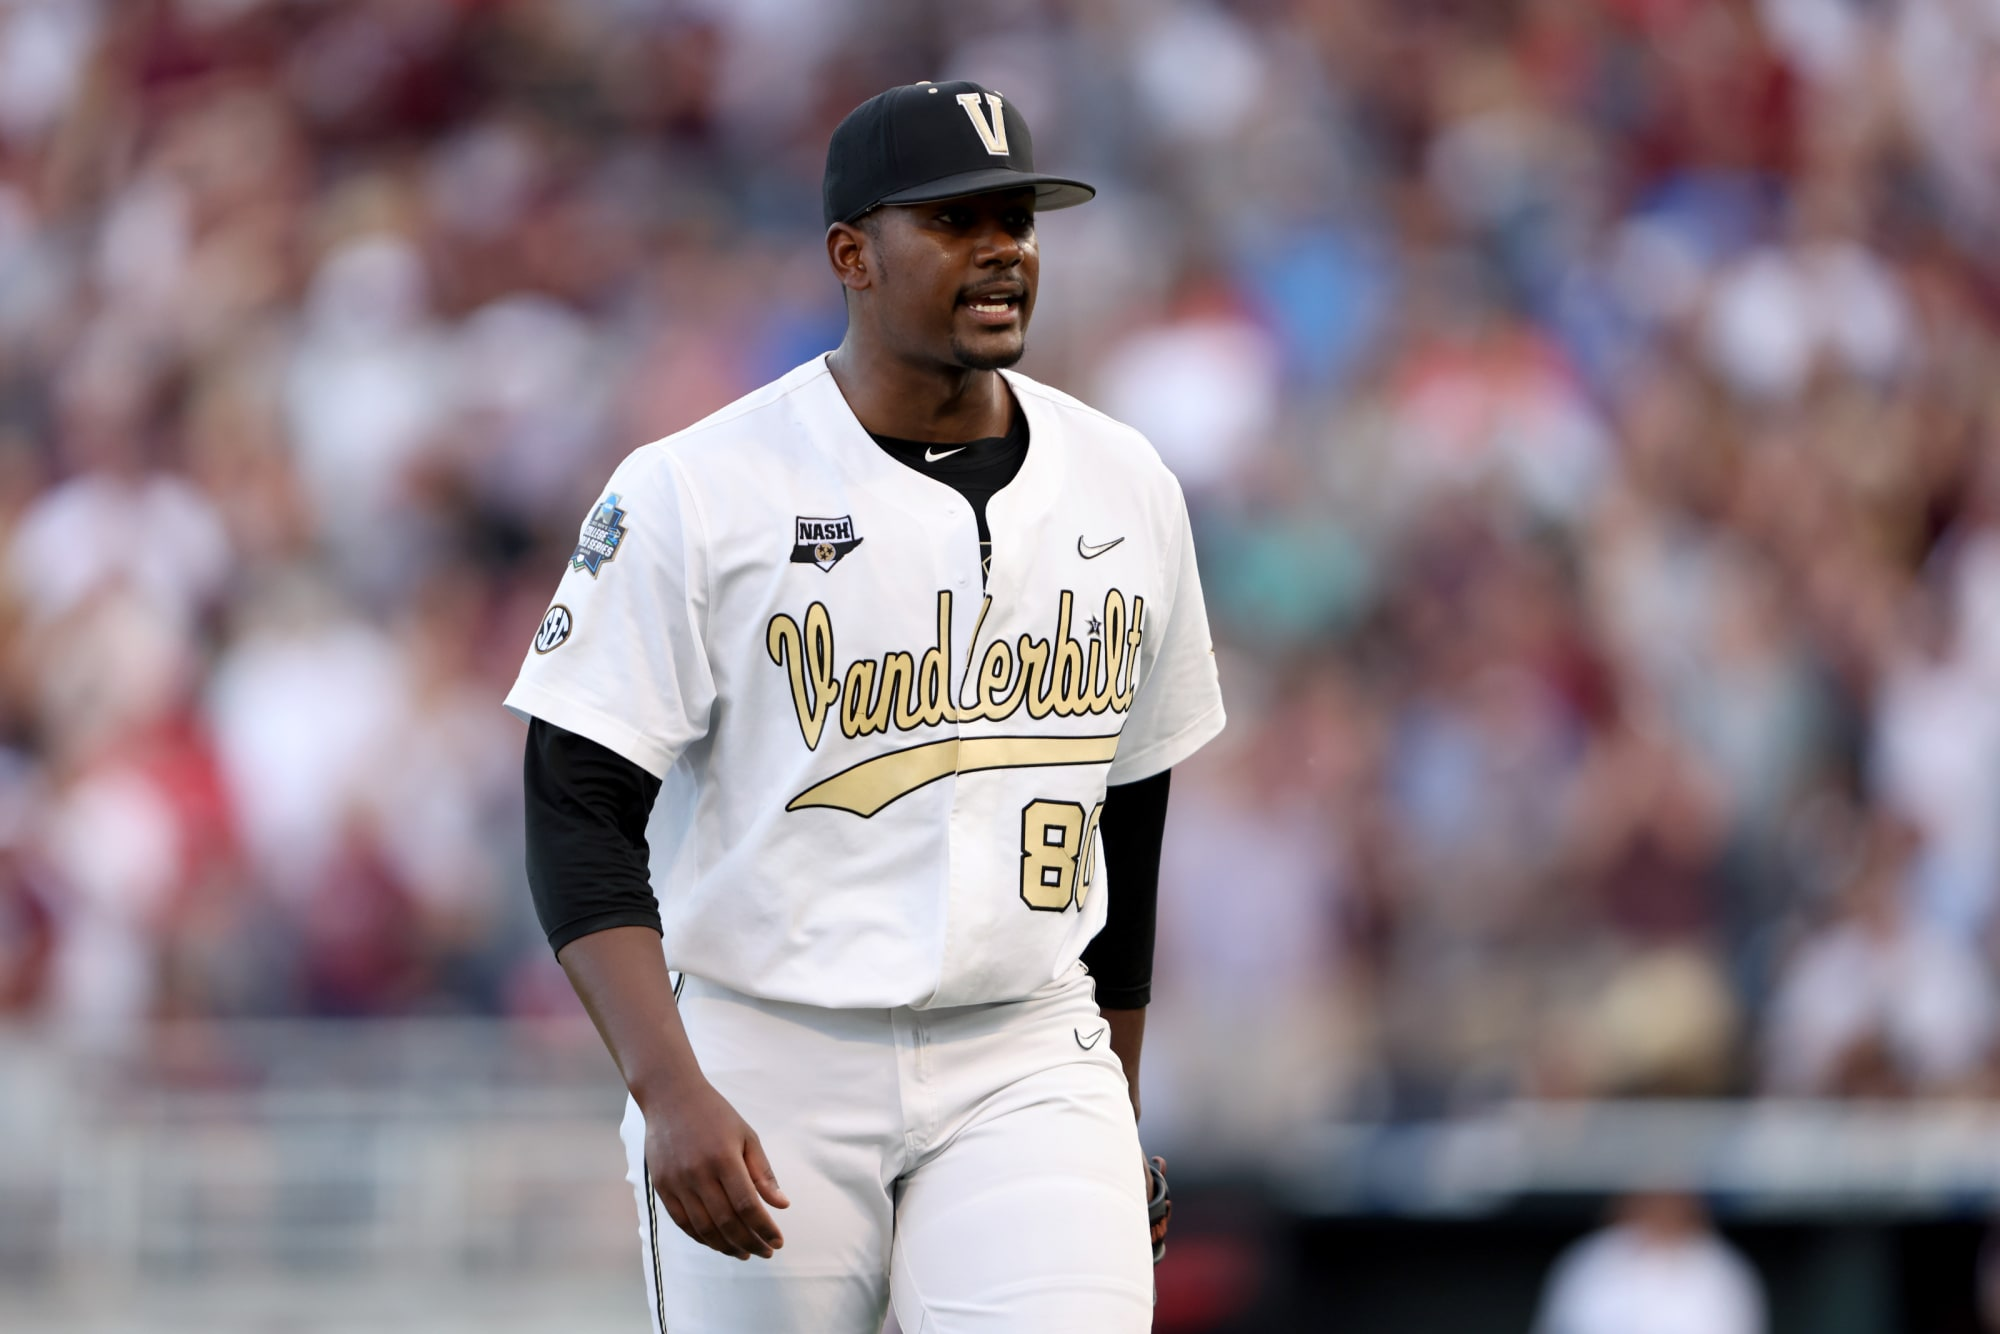 Mets rumors: Does Kumar Rocker already have medical issues?